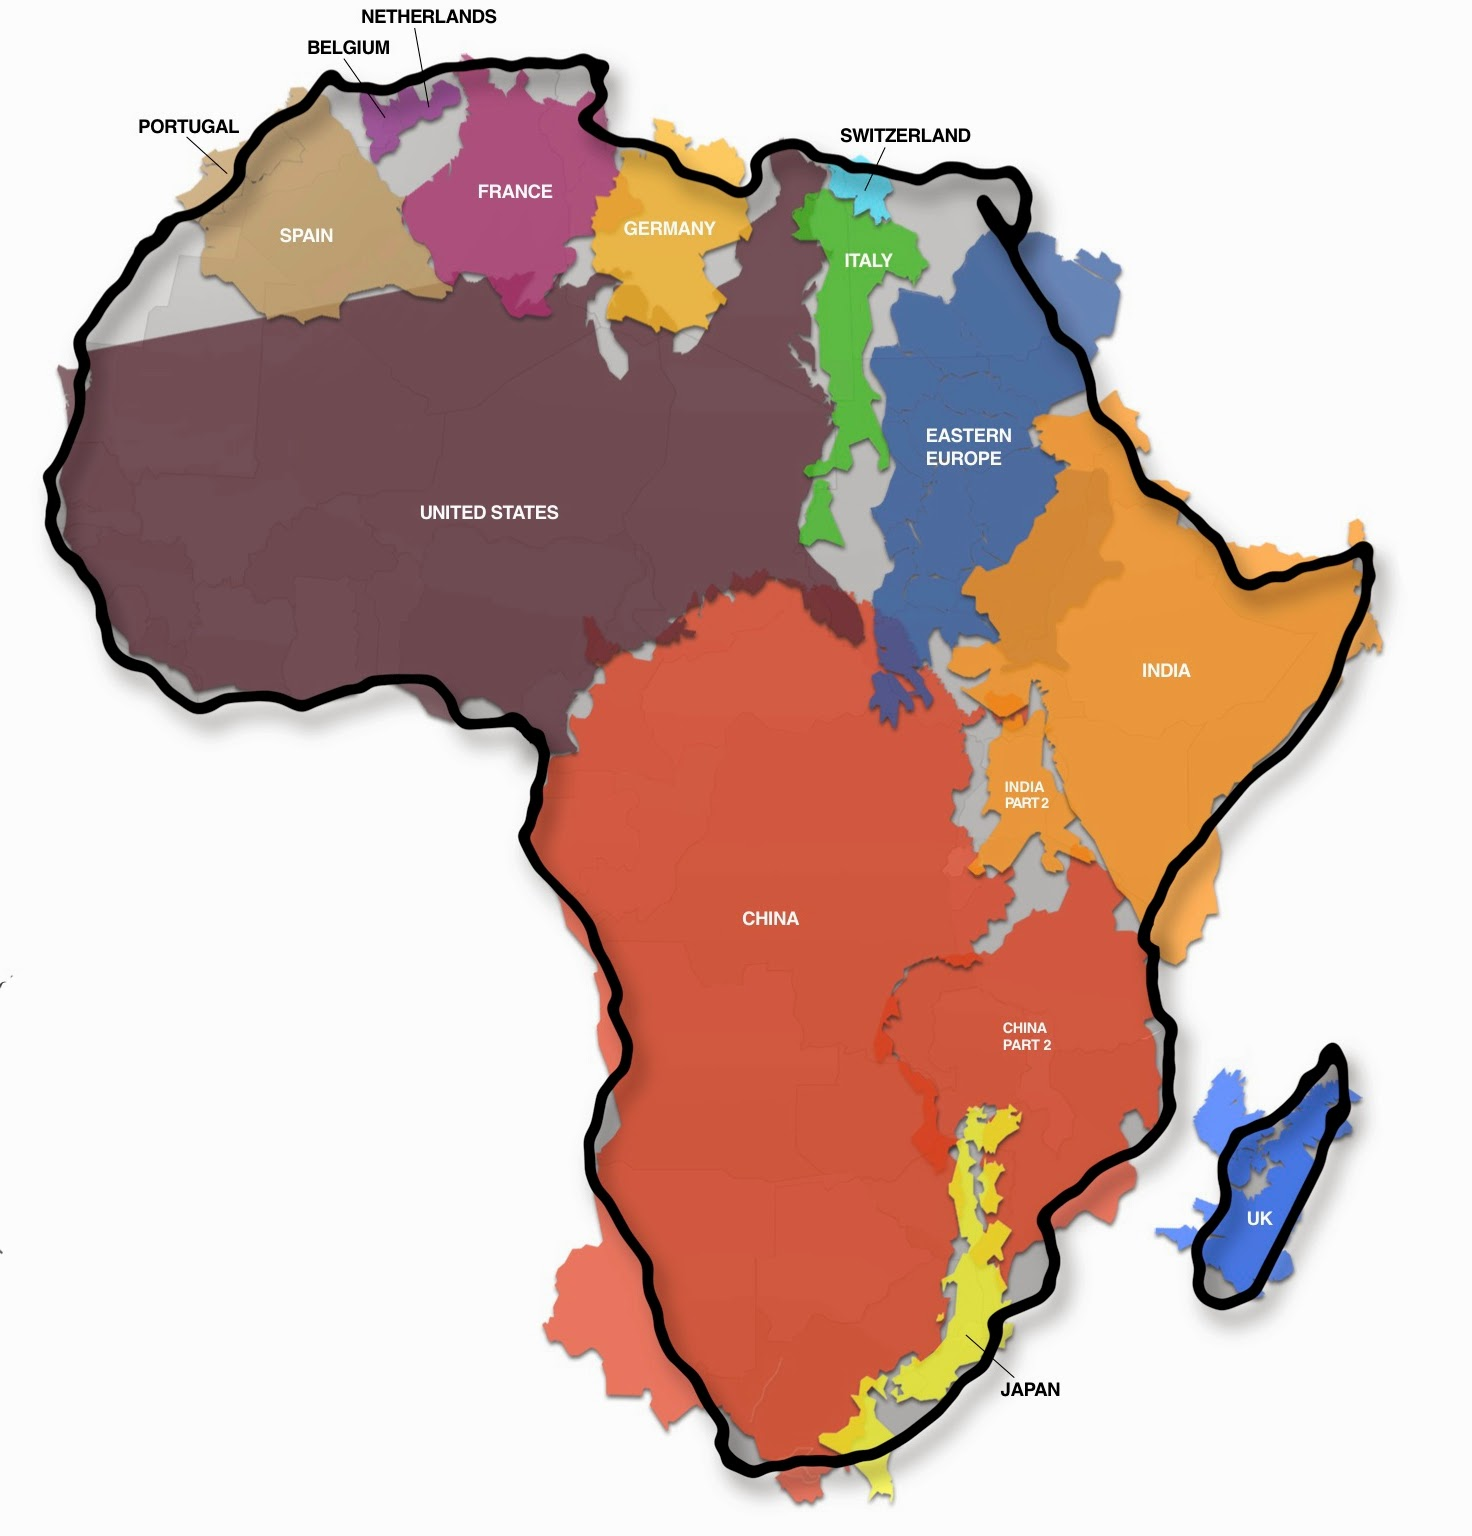 Africa - the biggest continent